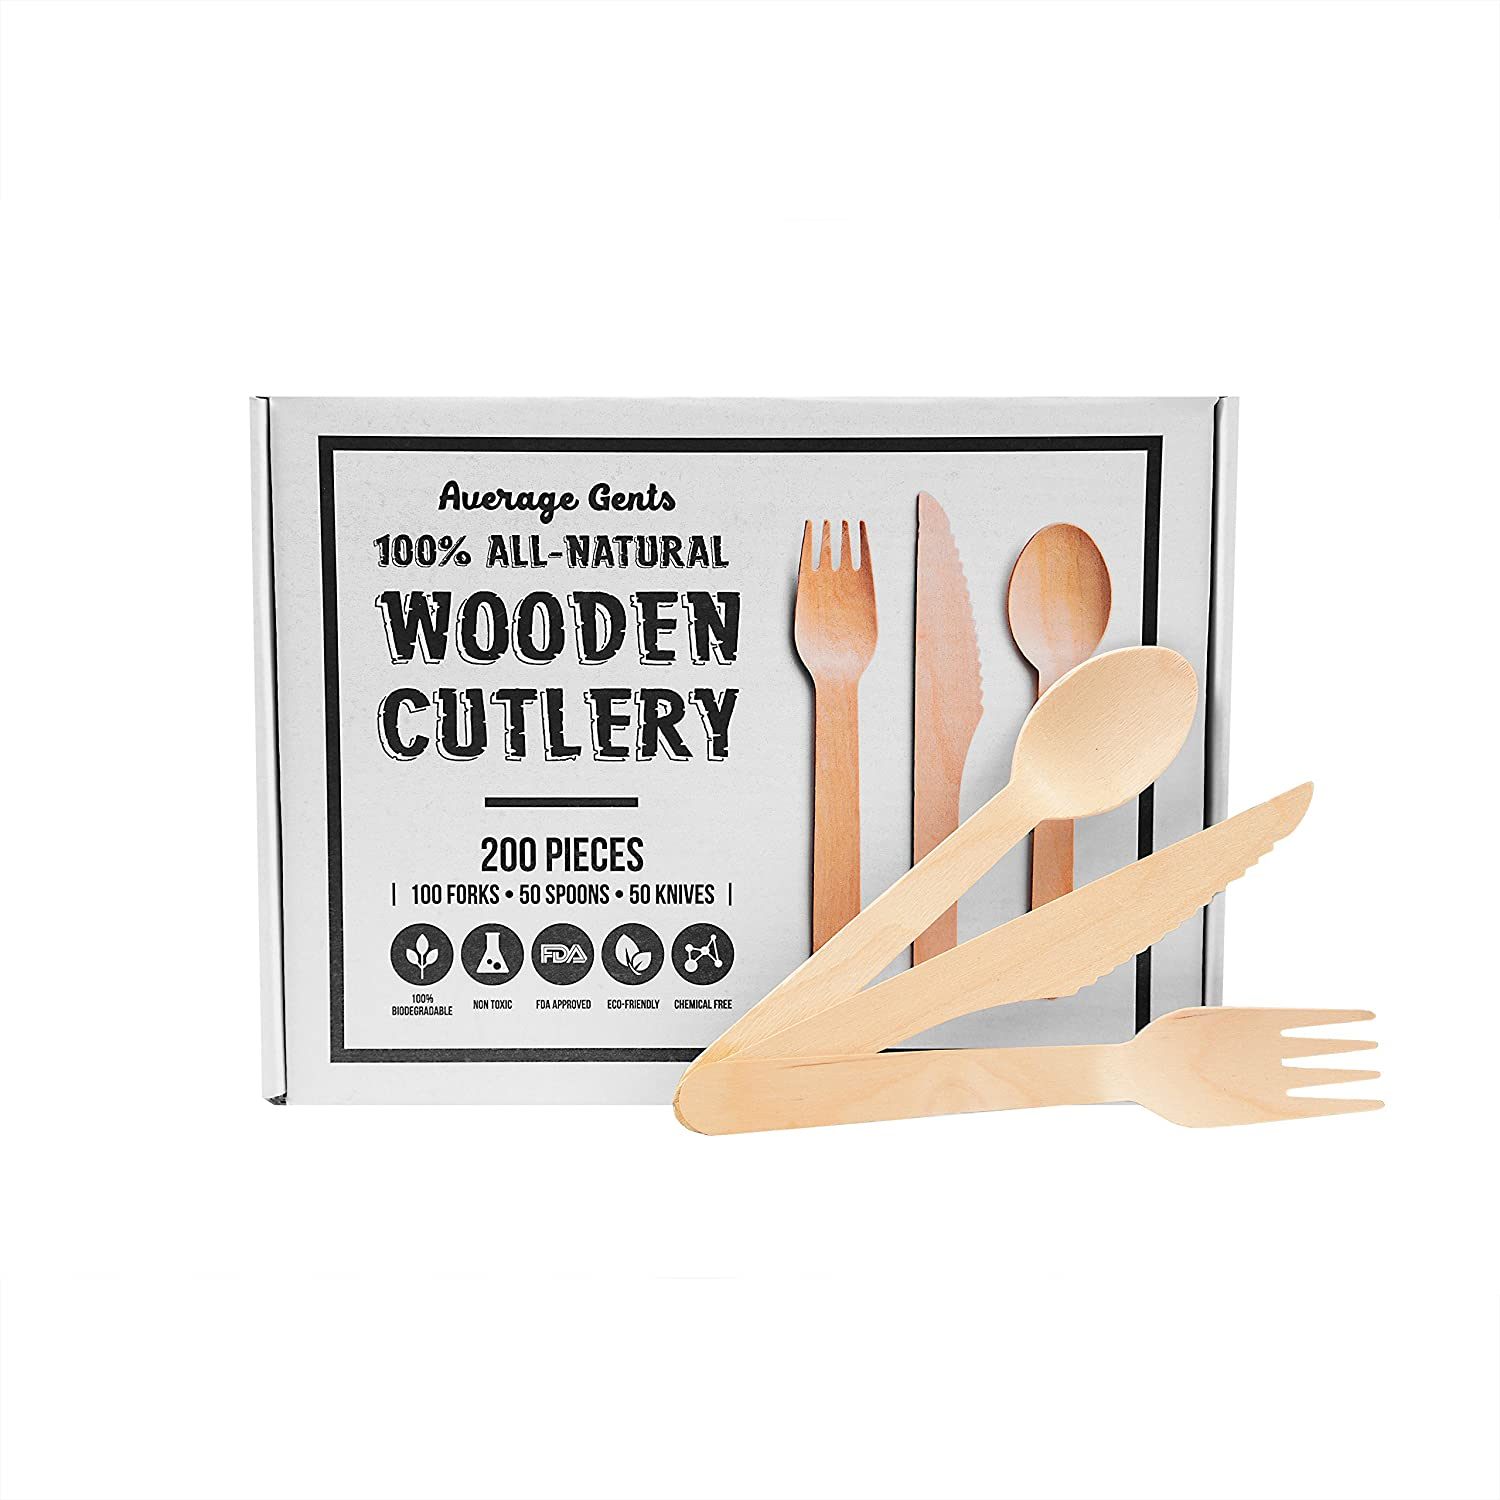 Disposable Wooden Cutlery Utensil Set by Average Gents